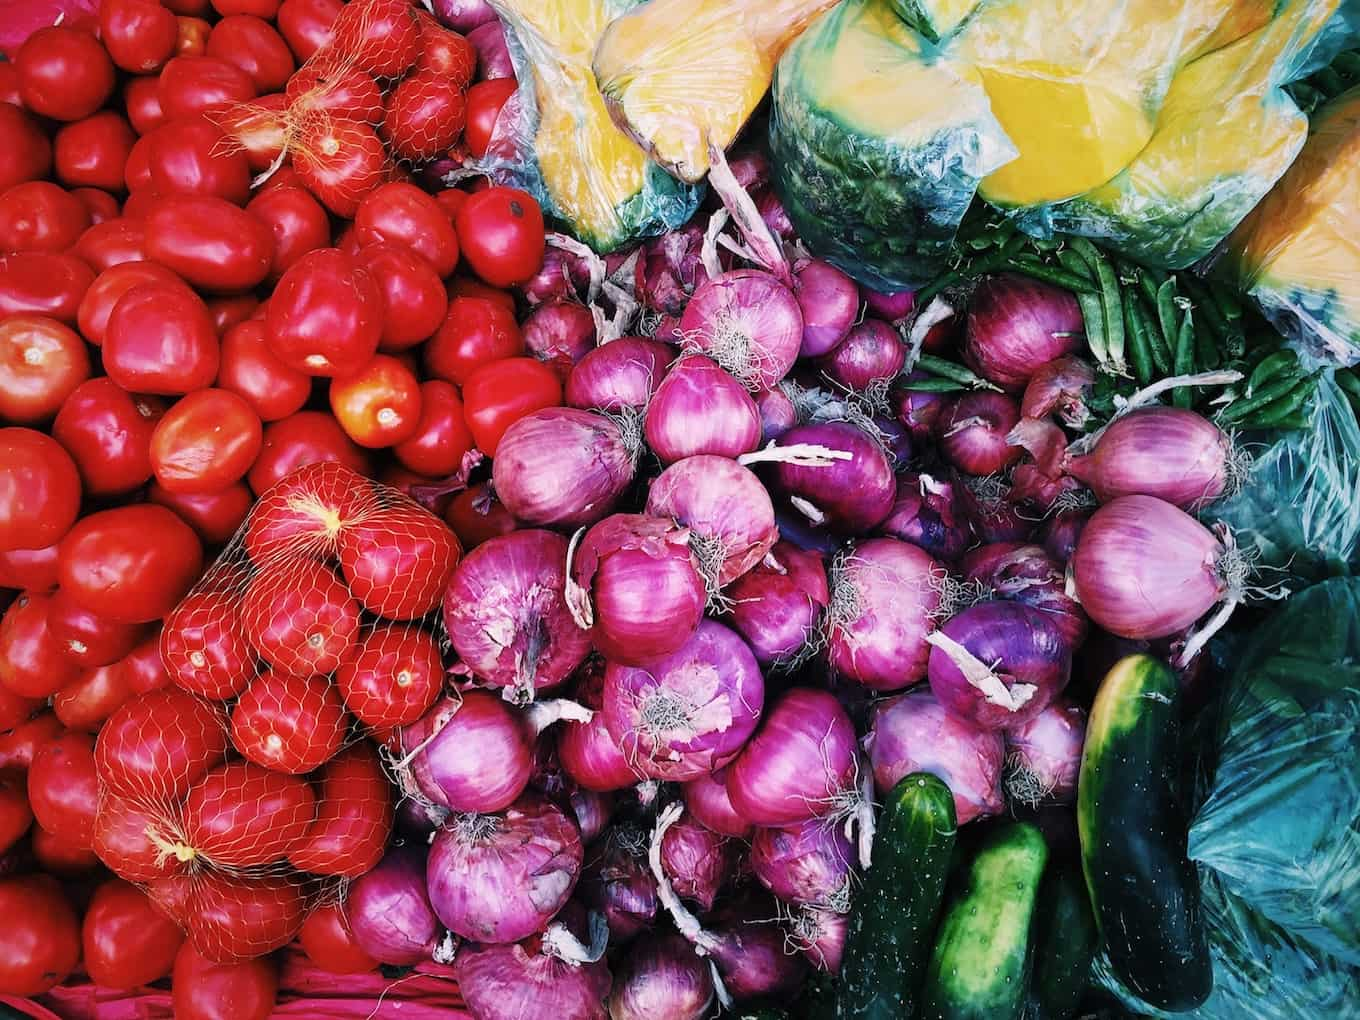 Group of tomatoes and vegetables